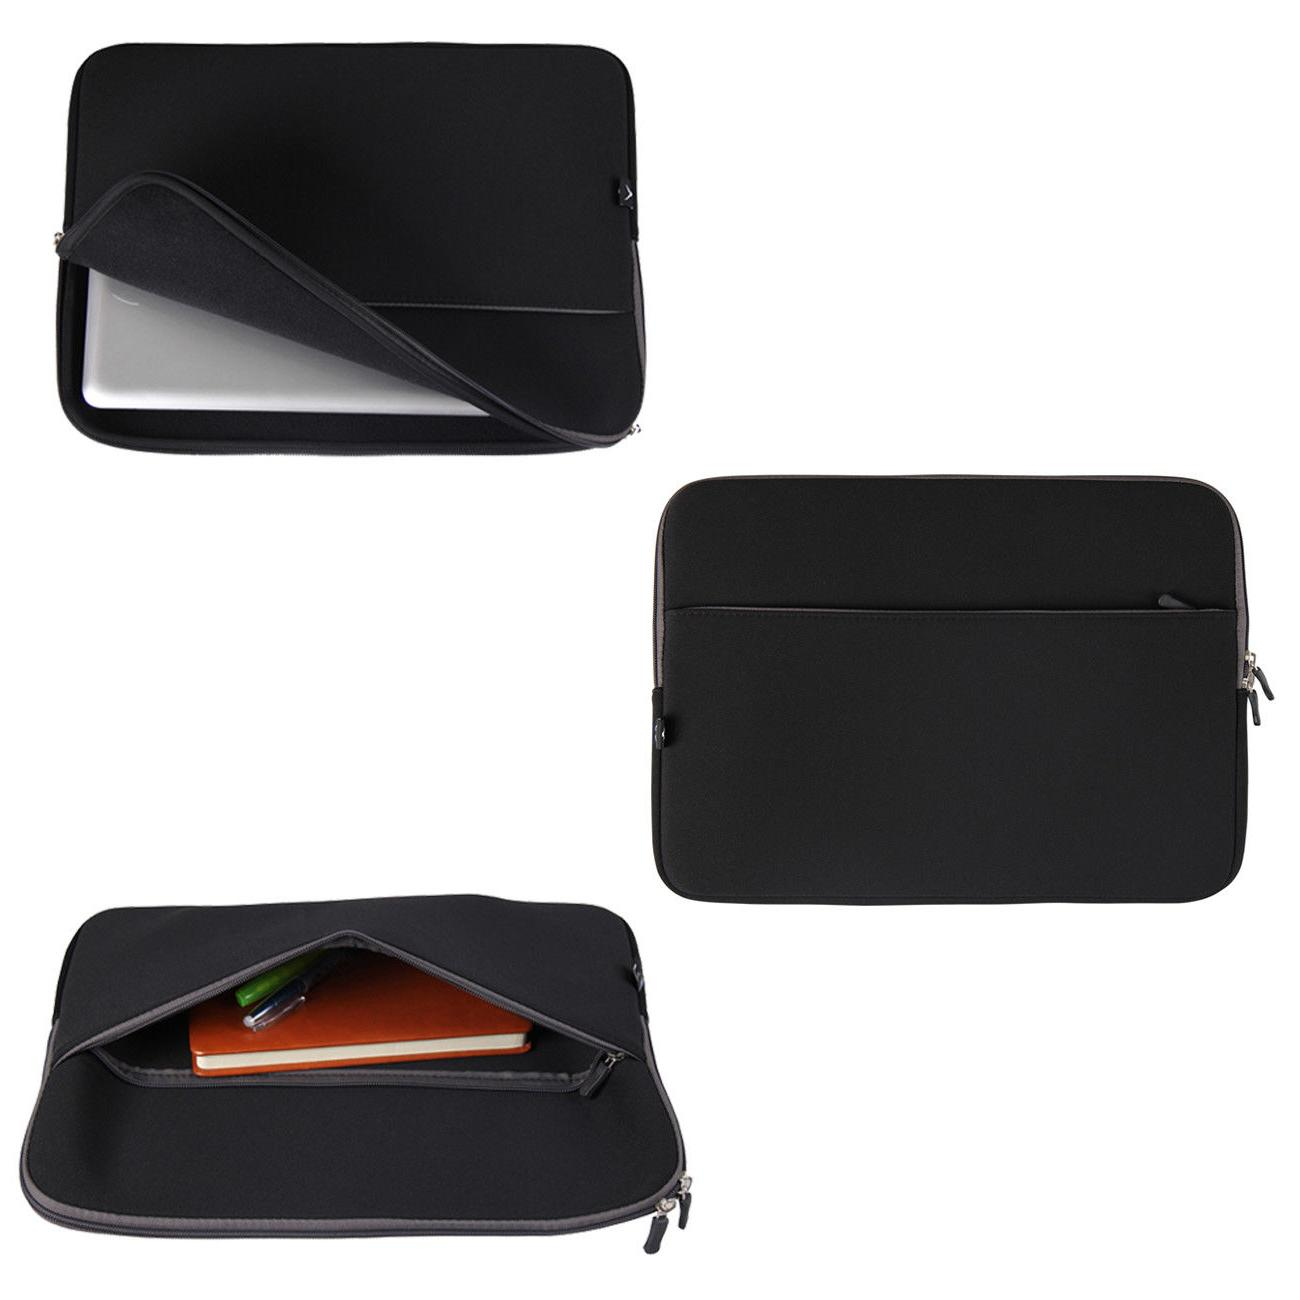 "15"" Laptop Sleeve Case Cover Pouch for 15.4"" Dell Macbook"